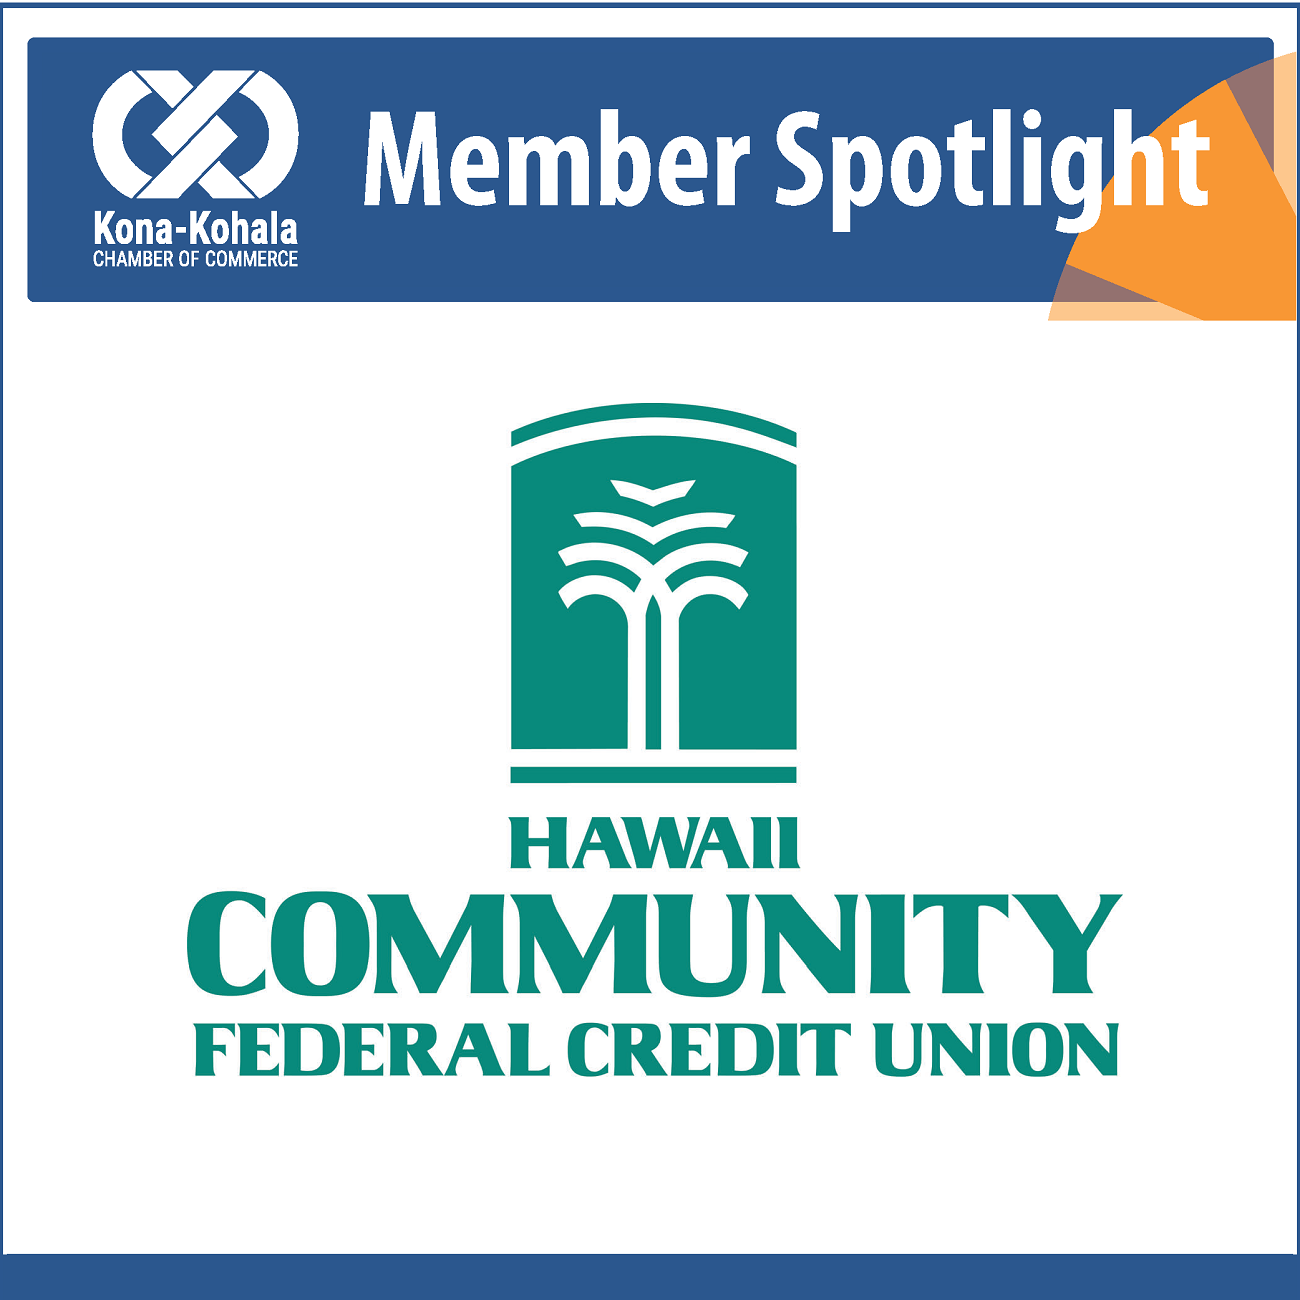 Hawaii Community Federal Credit Union Welcomes New Board Member